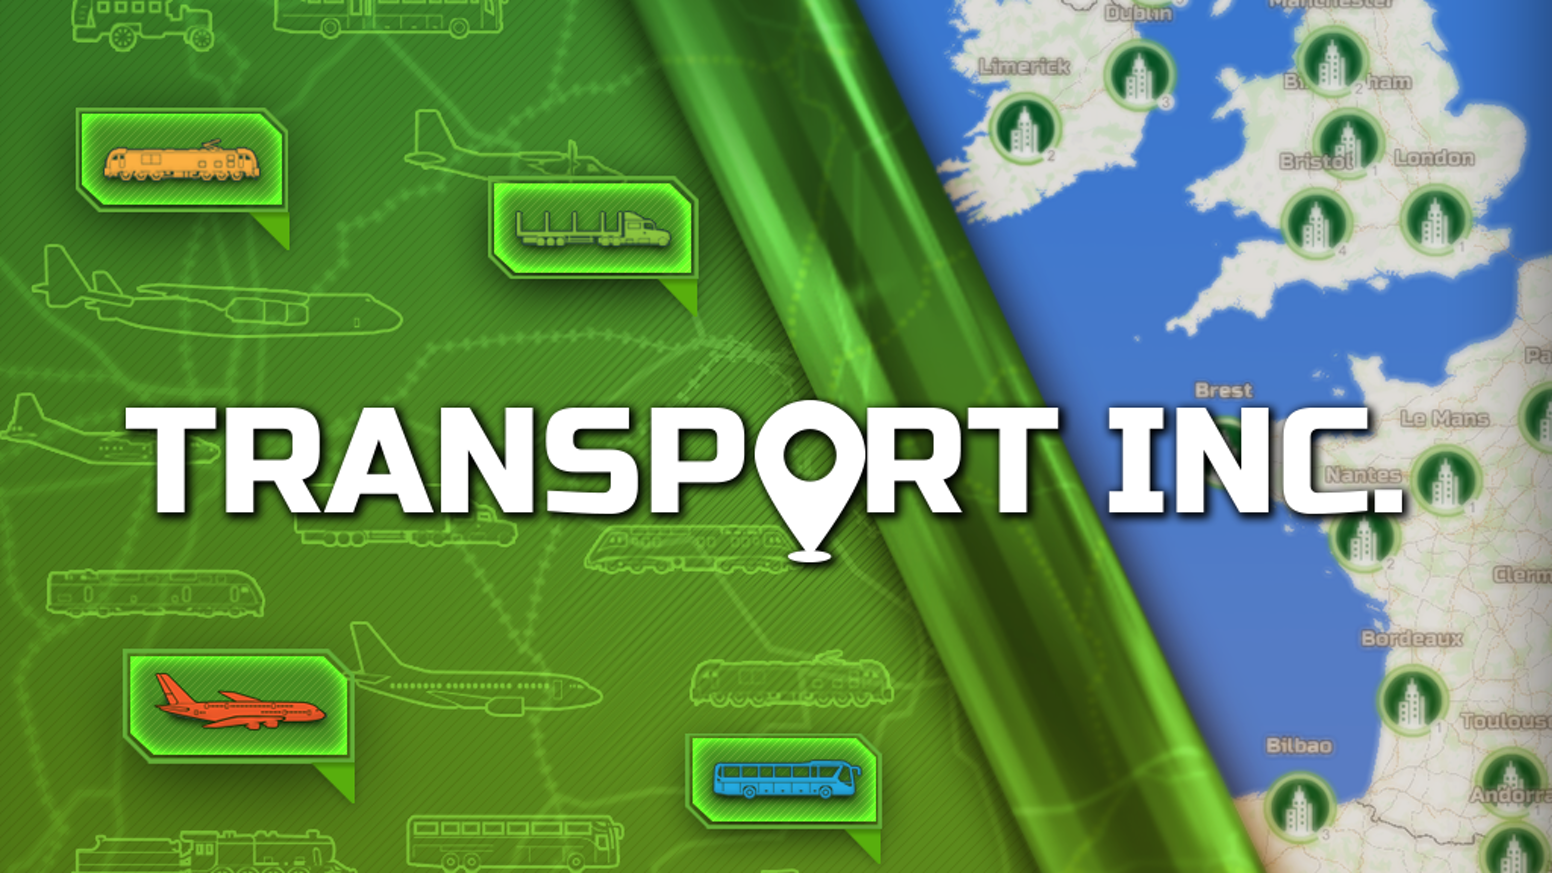 A transport company simulator challenging your skills on moving passengers and cargo over real-world maps!